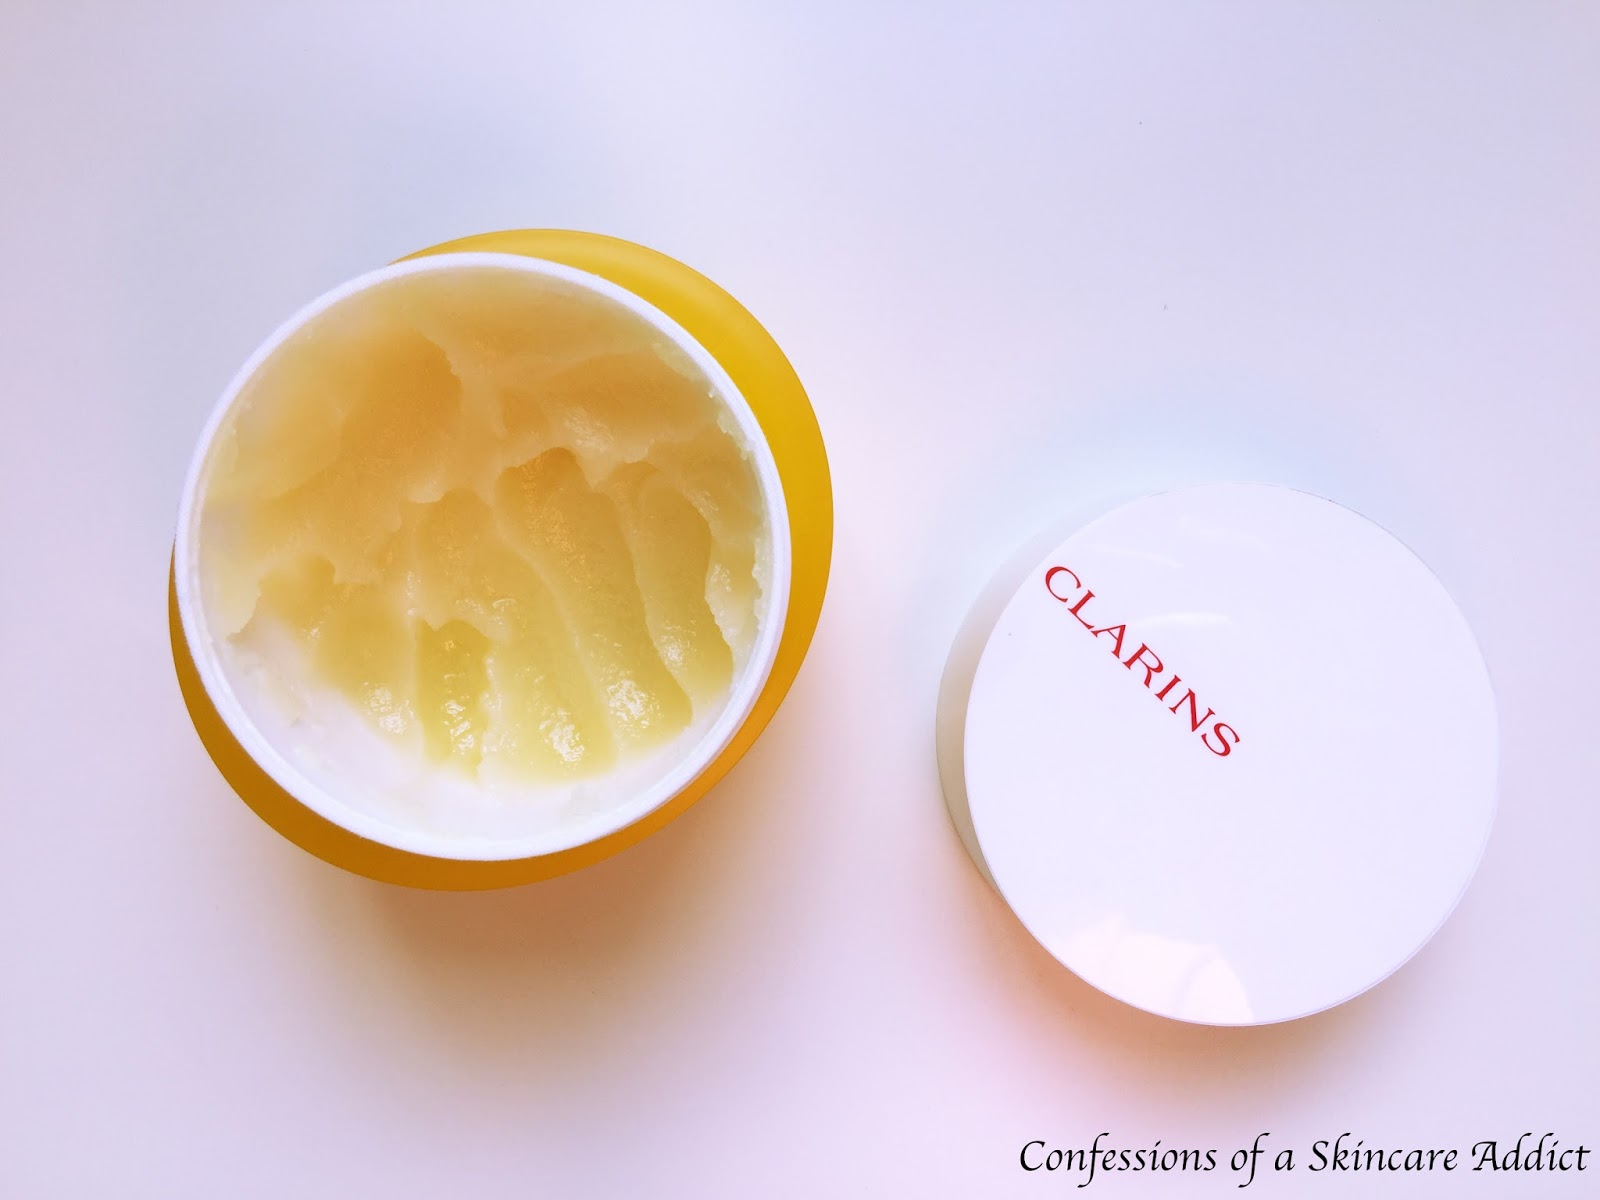 dr jart dermask micro jet clearing solution confessions of a the clarins toning body polisher has quite a similar aroma to it it contains rosemary rosewood and mint essential oils and the exfoliating property is from